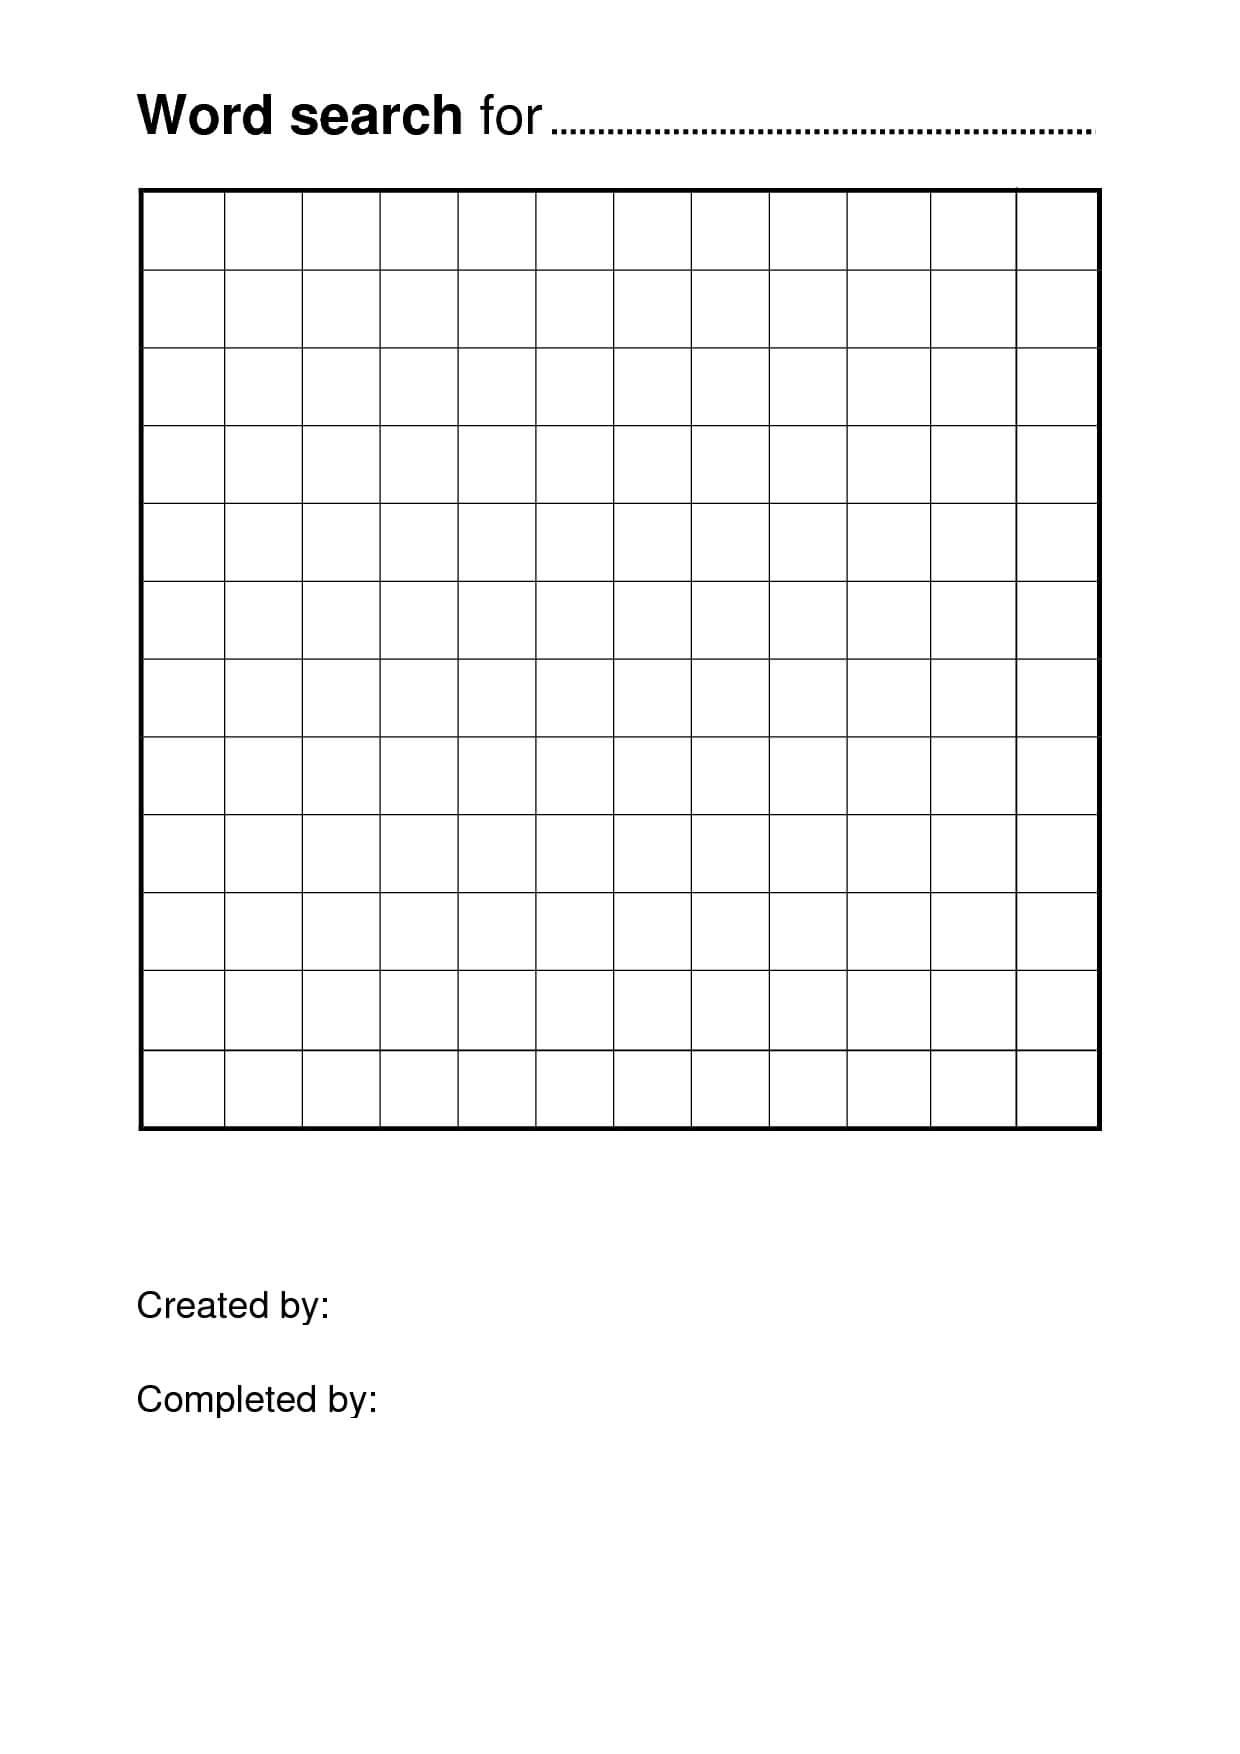 Free Printable Word Search Puzzle Templates | Templates For Blank Word Search Template Free